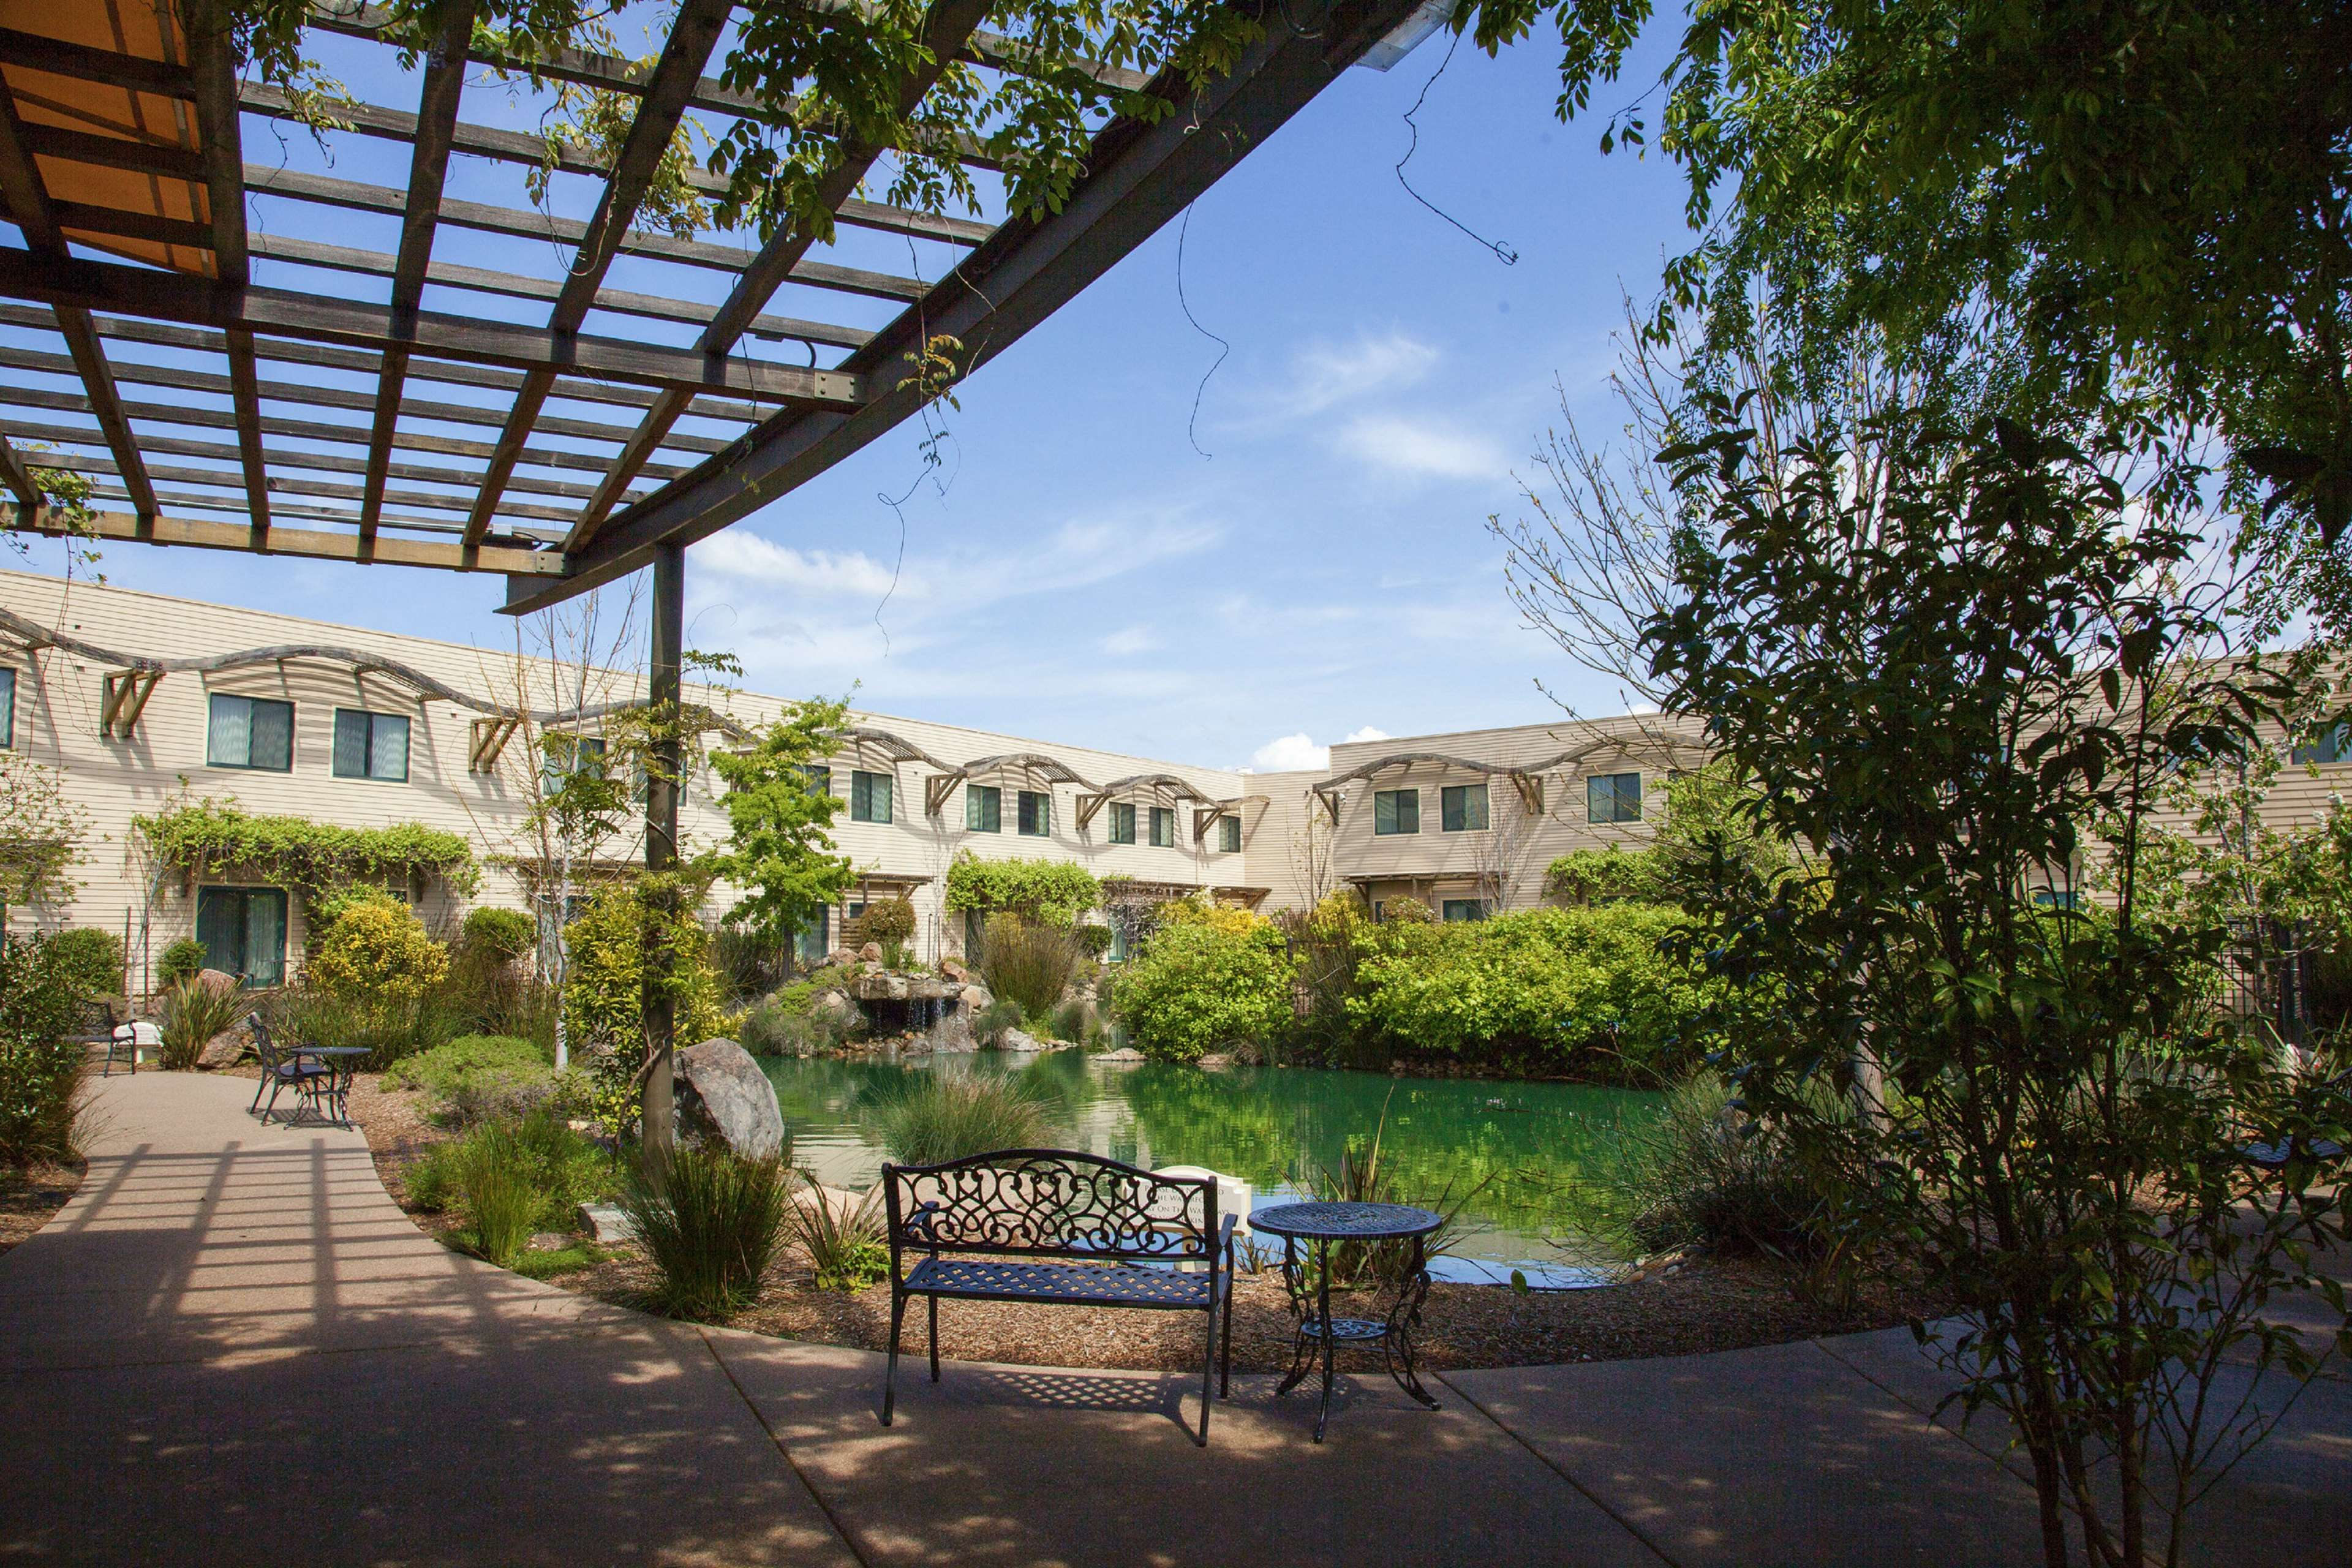 DoubleTree by Hilton Hotel & Spa Napa Valley - American Canyon image 1